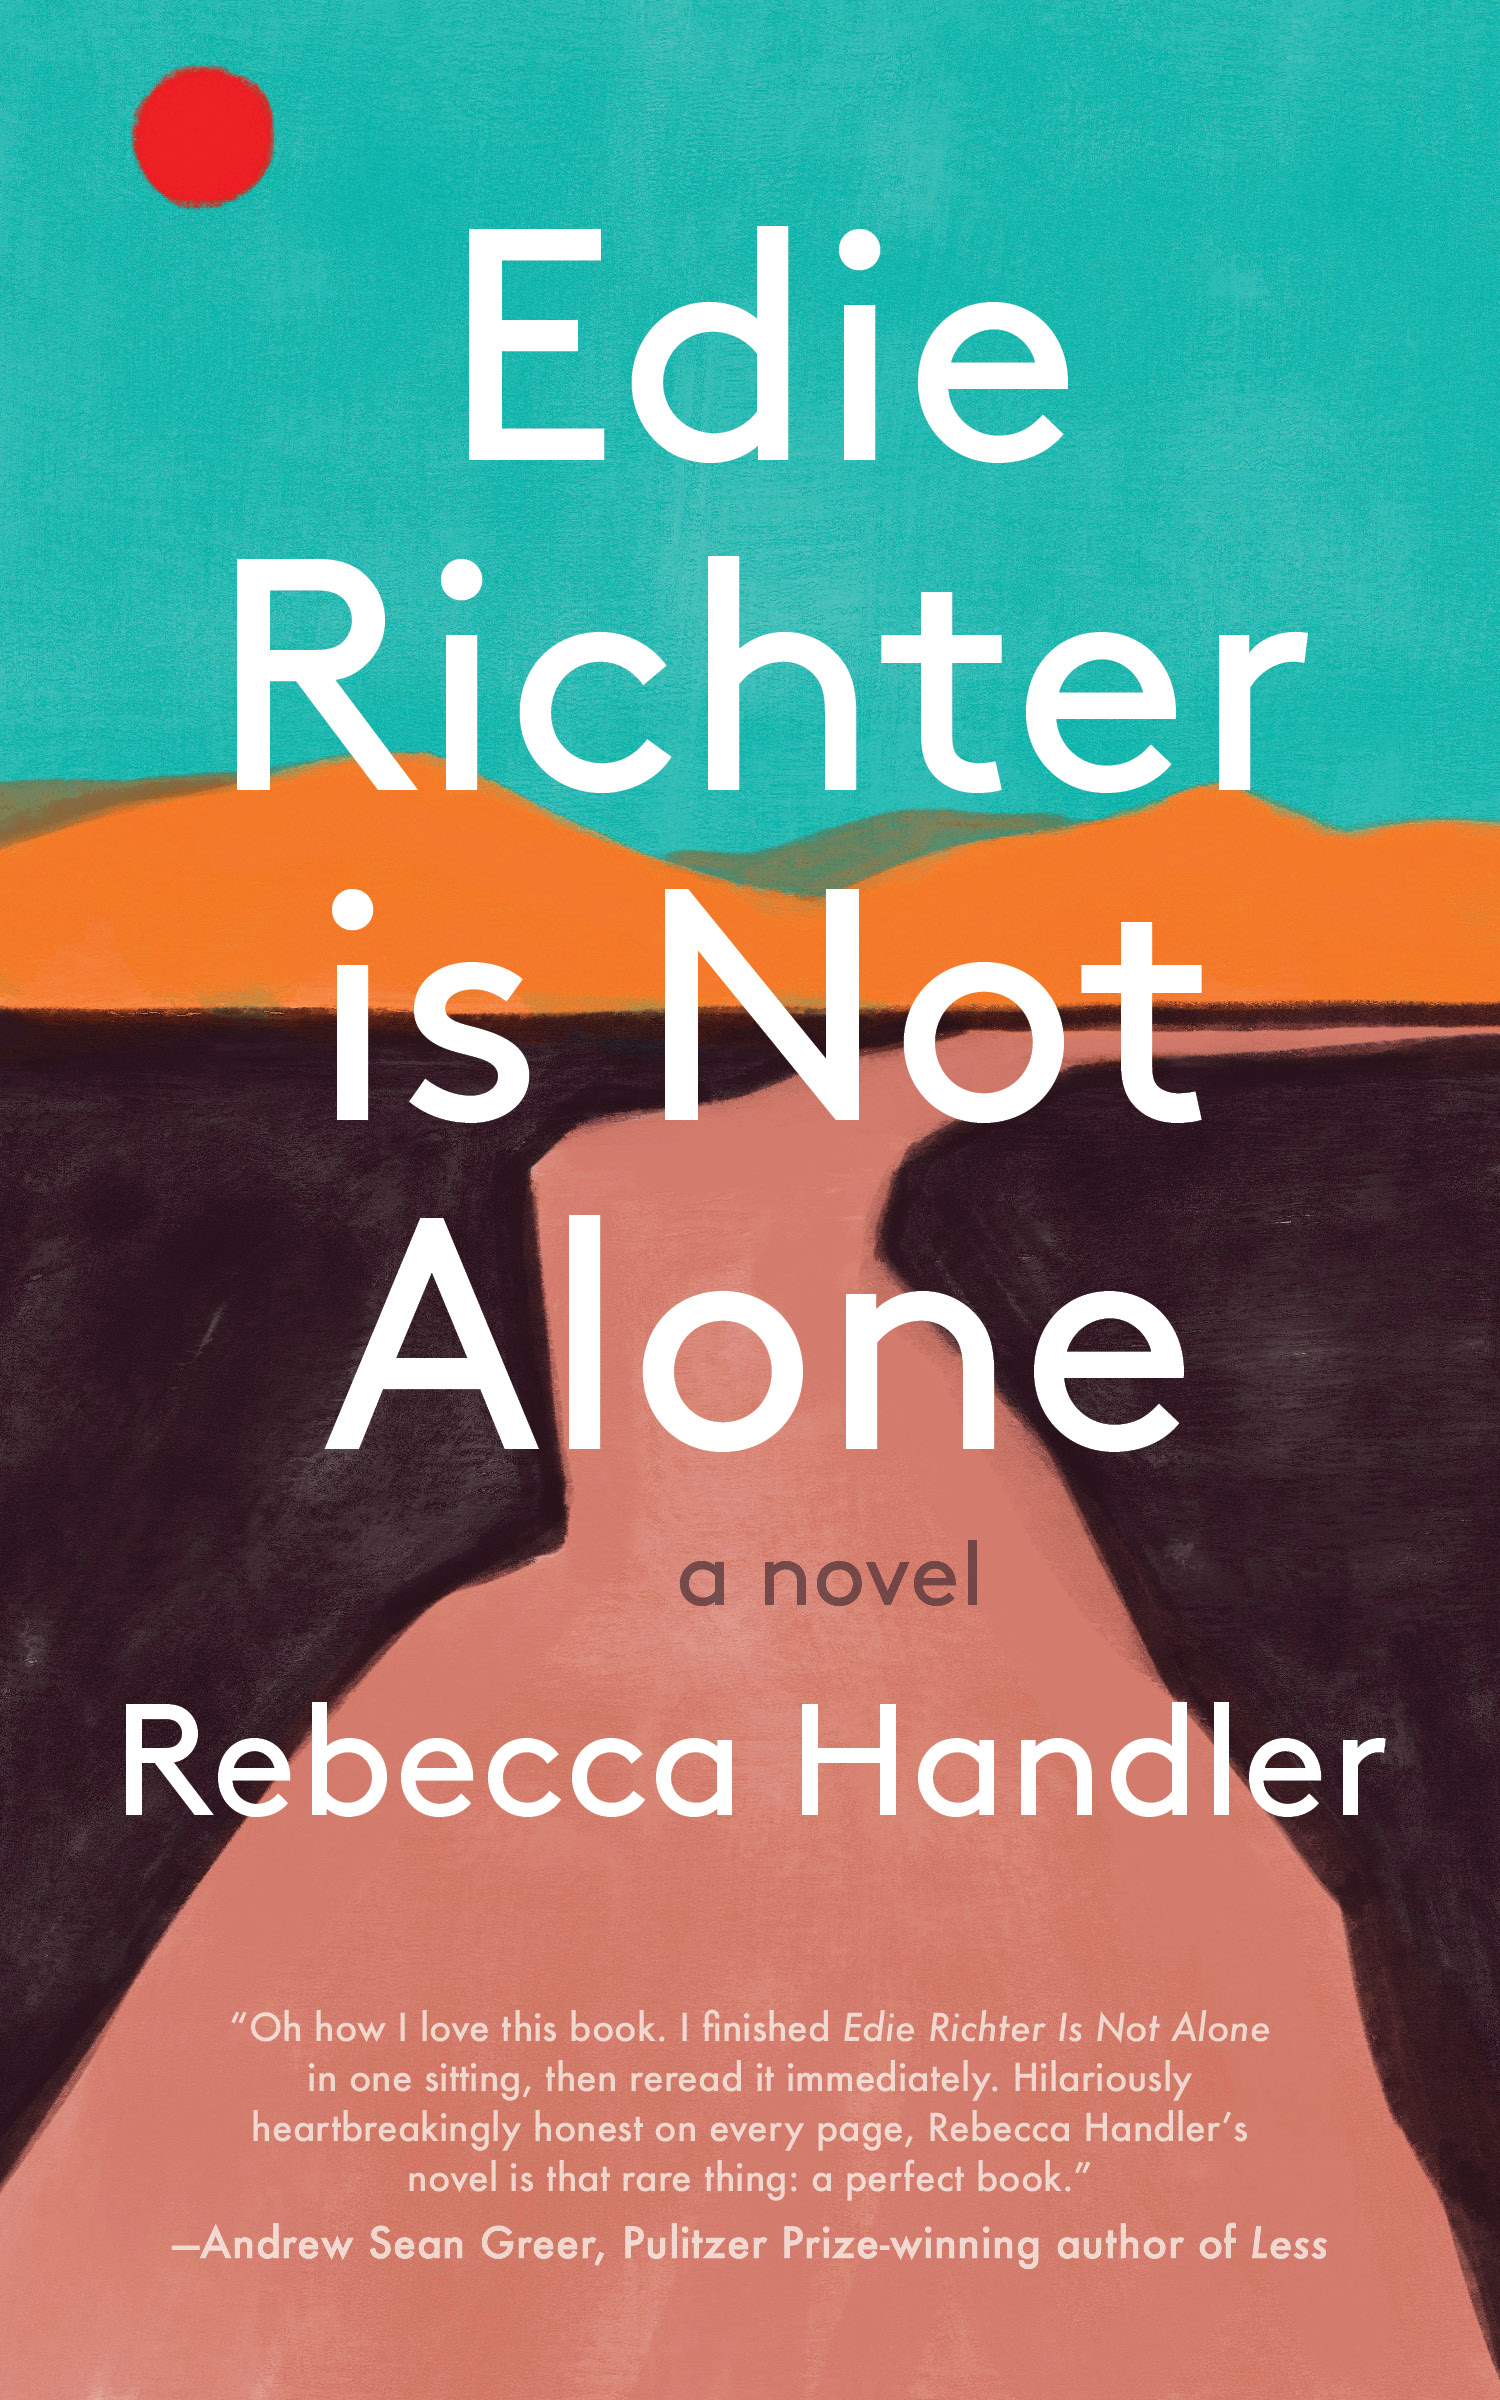 Edie Richter Is Not Alone by Rebecca Handler (Unnamed Press)